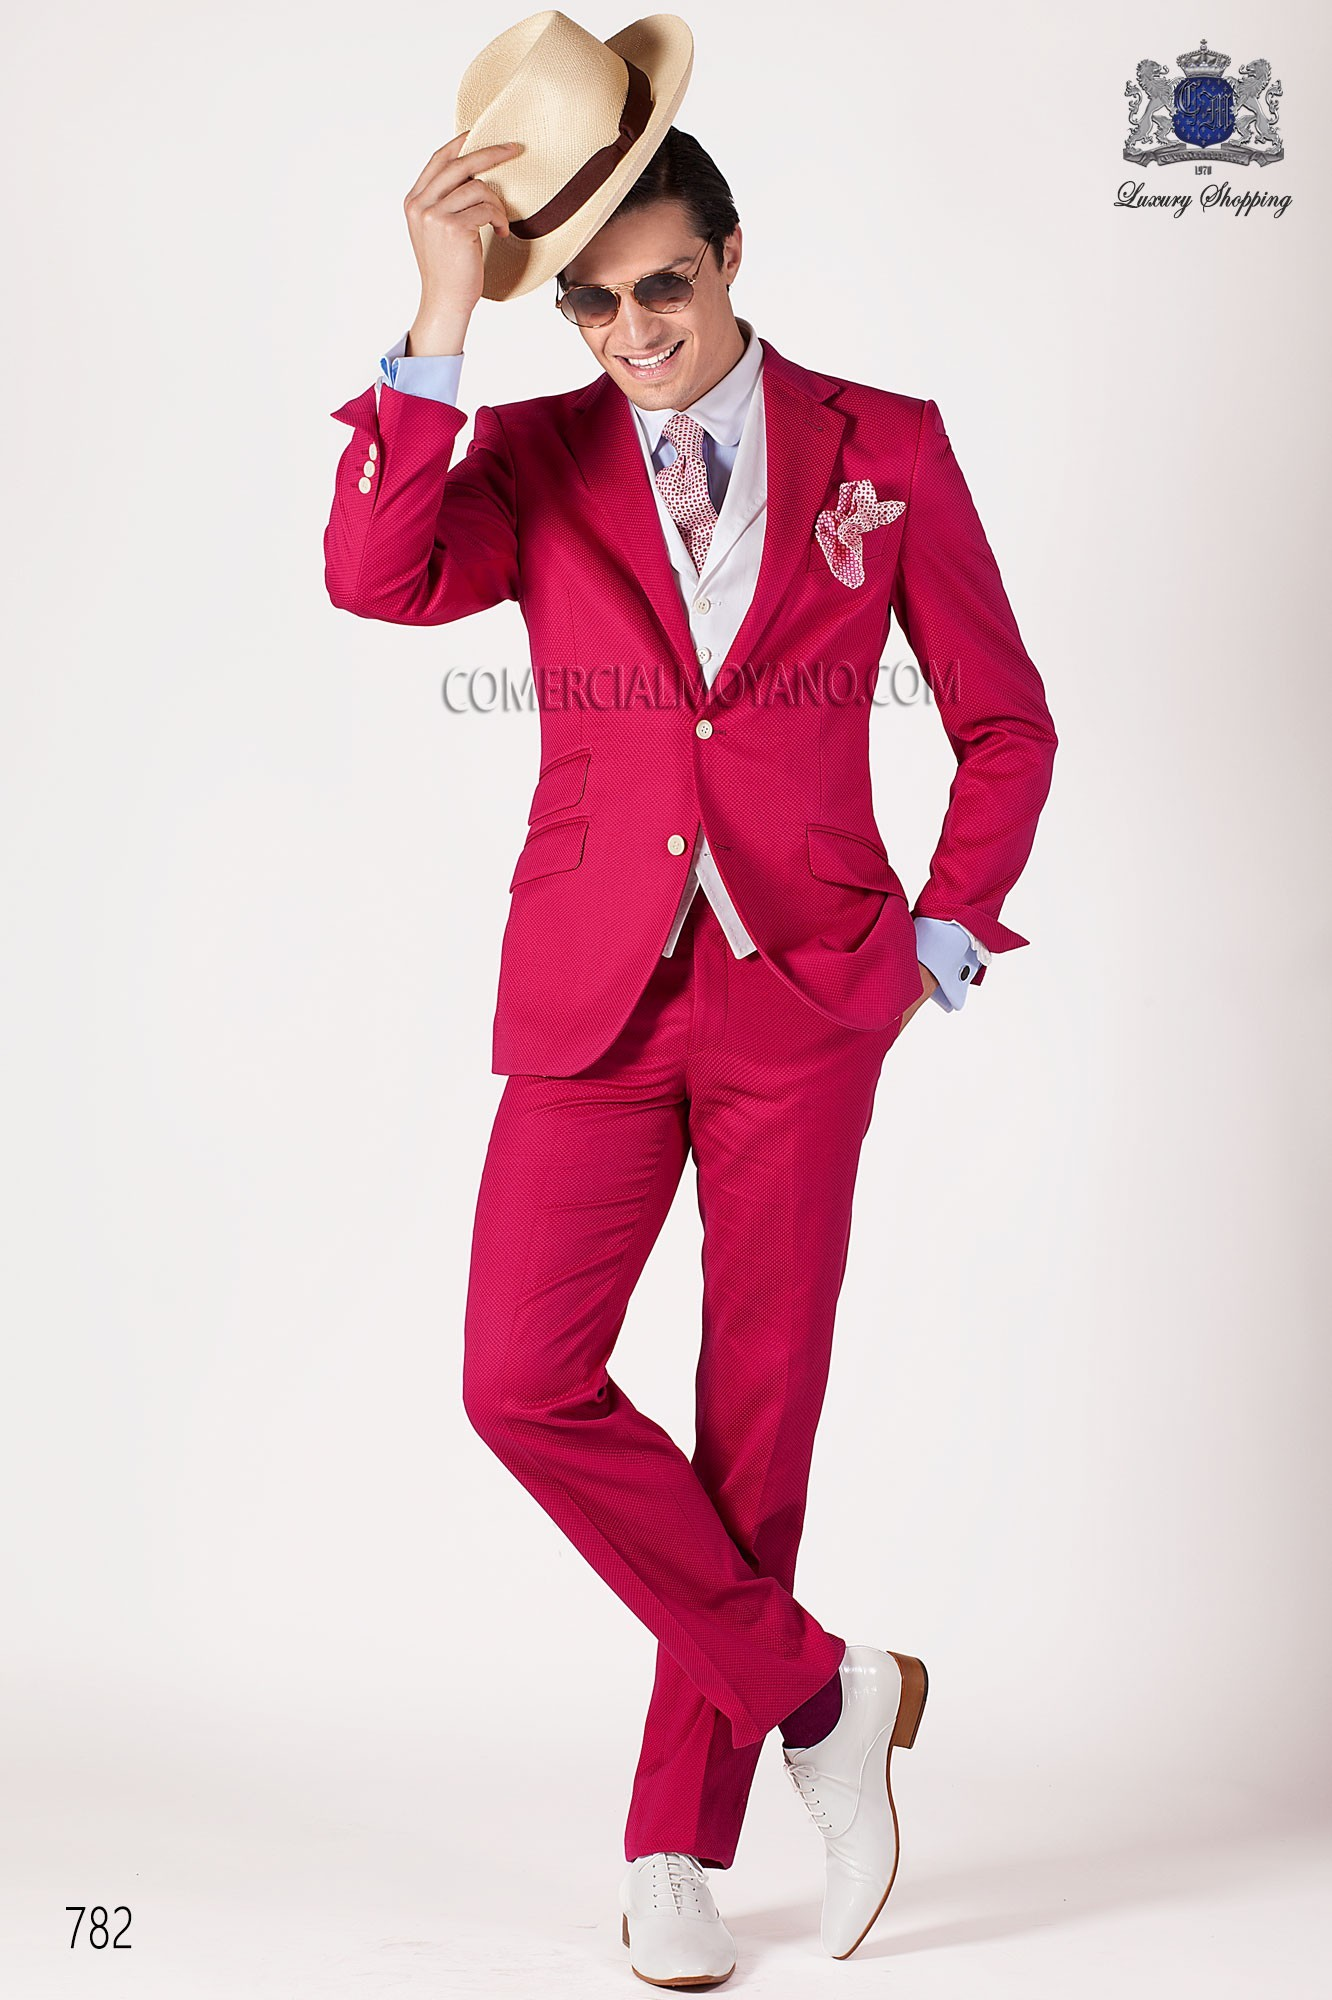 Hipster fuchsia men wedding suit model 782 Ottavio Nuccio Gala